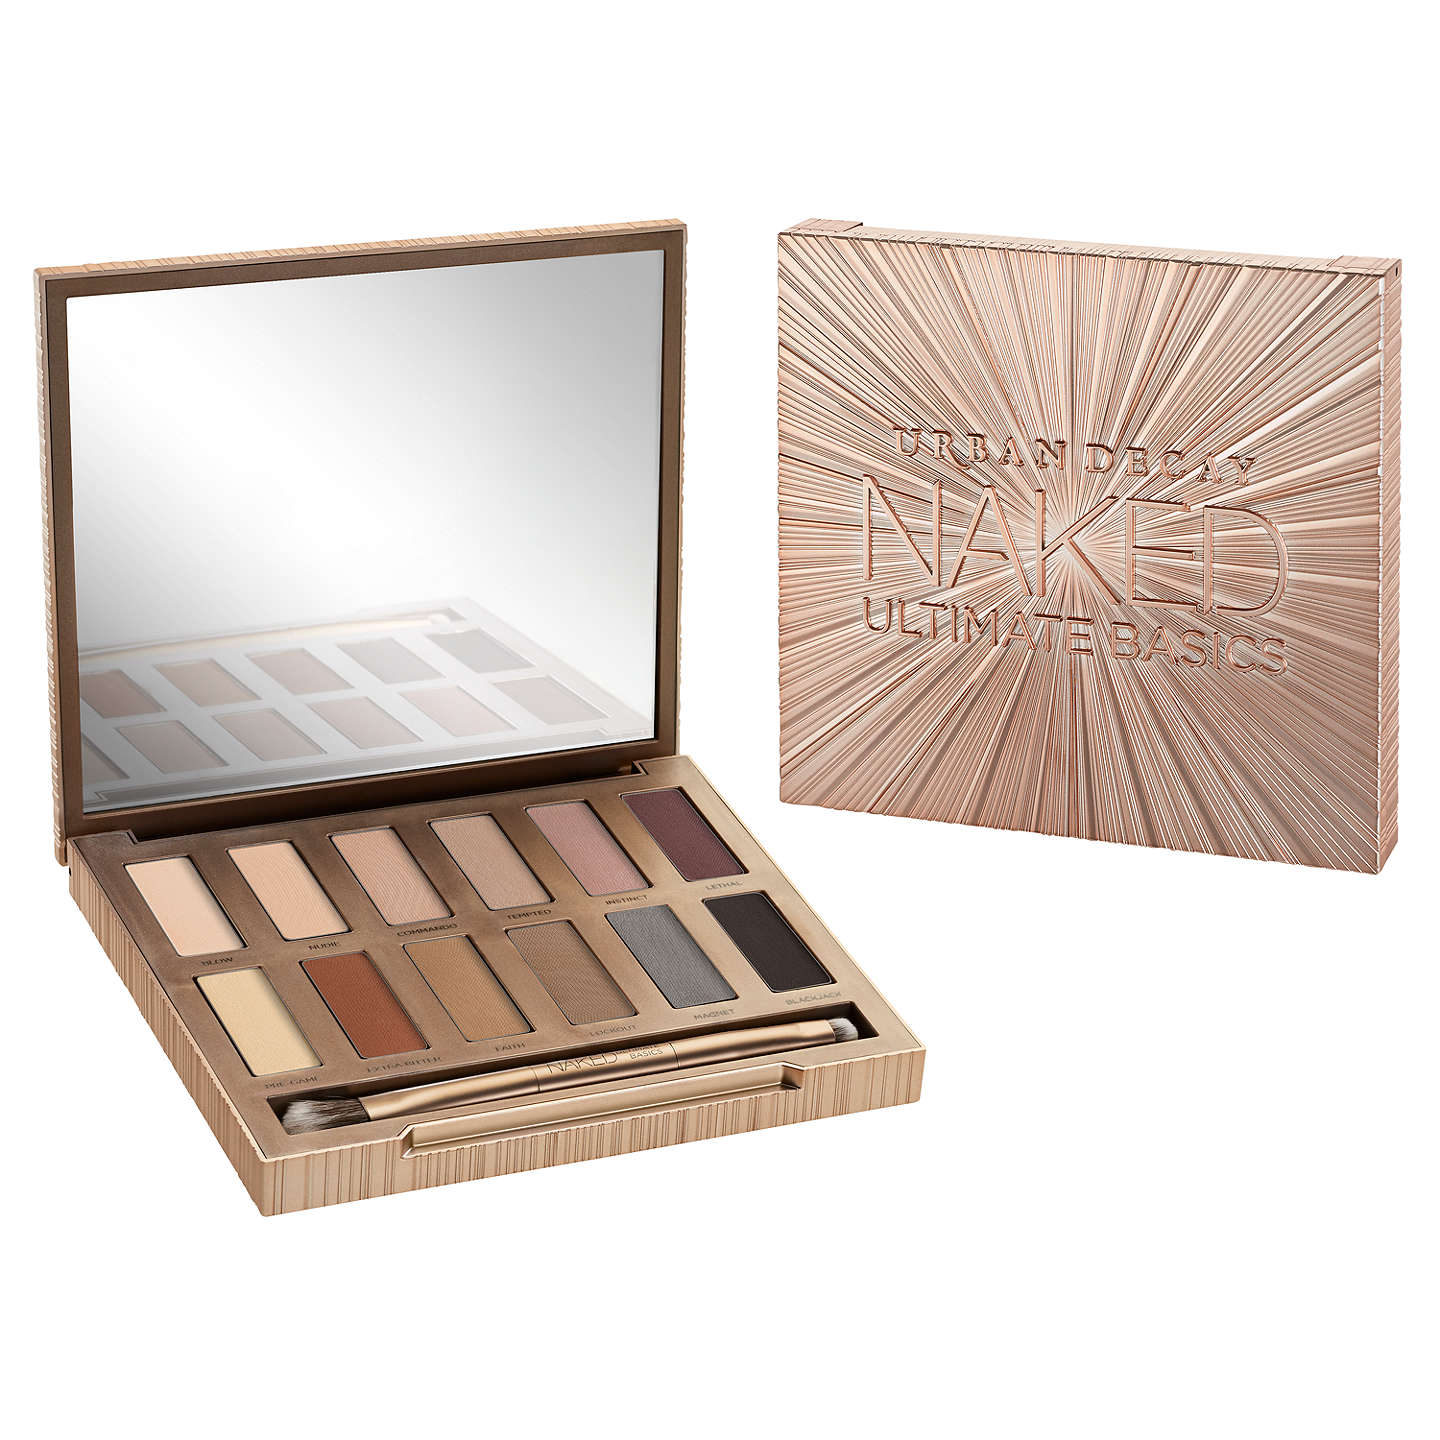 BuyUrban Decay Naked Ultimate Basics Eyeshadow Palette Online at johnlewis.com